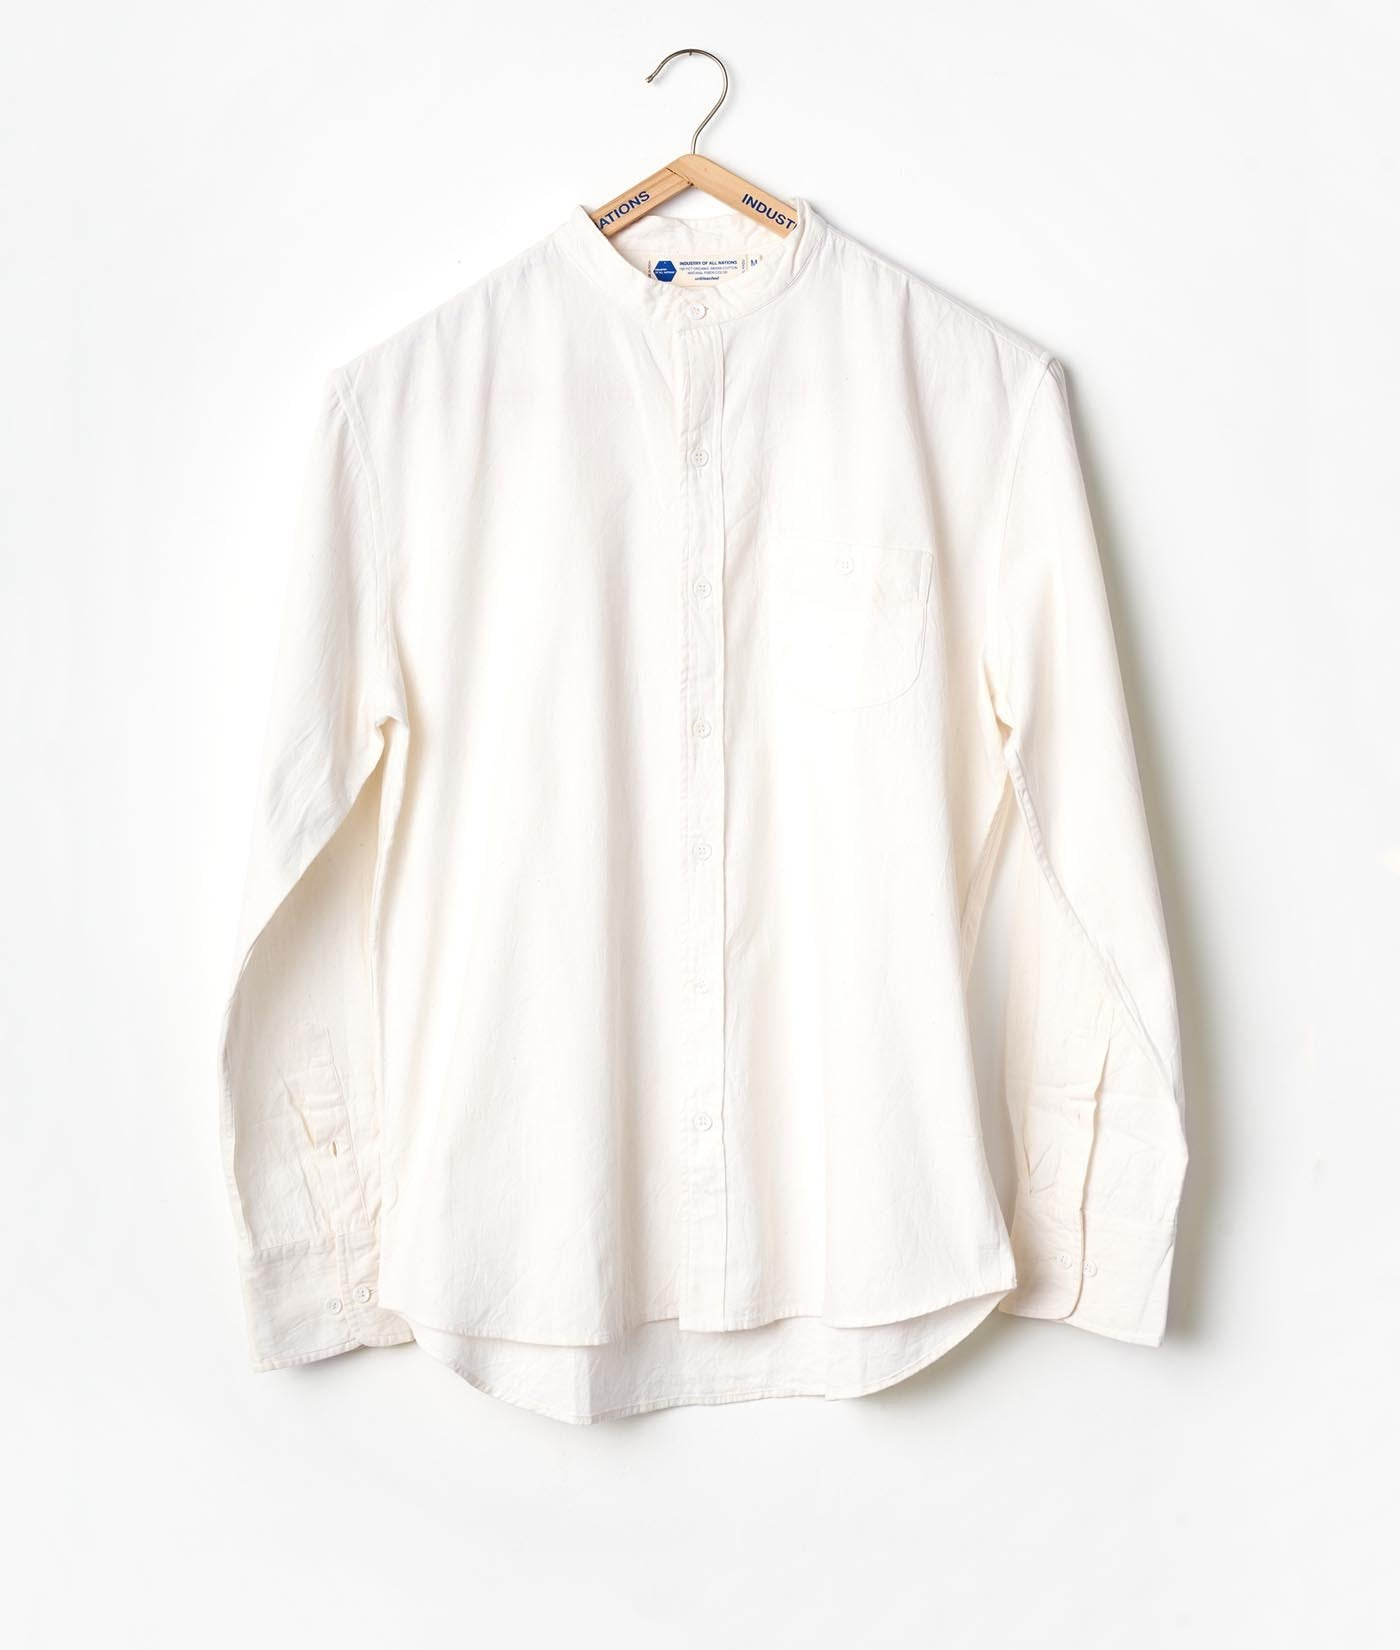 Mao Madras Shirt - Heavy Long Sleeve